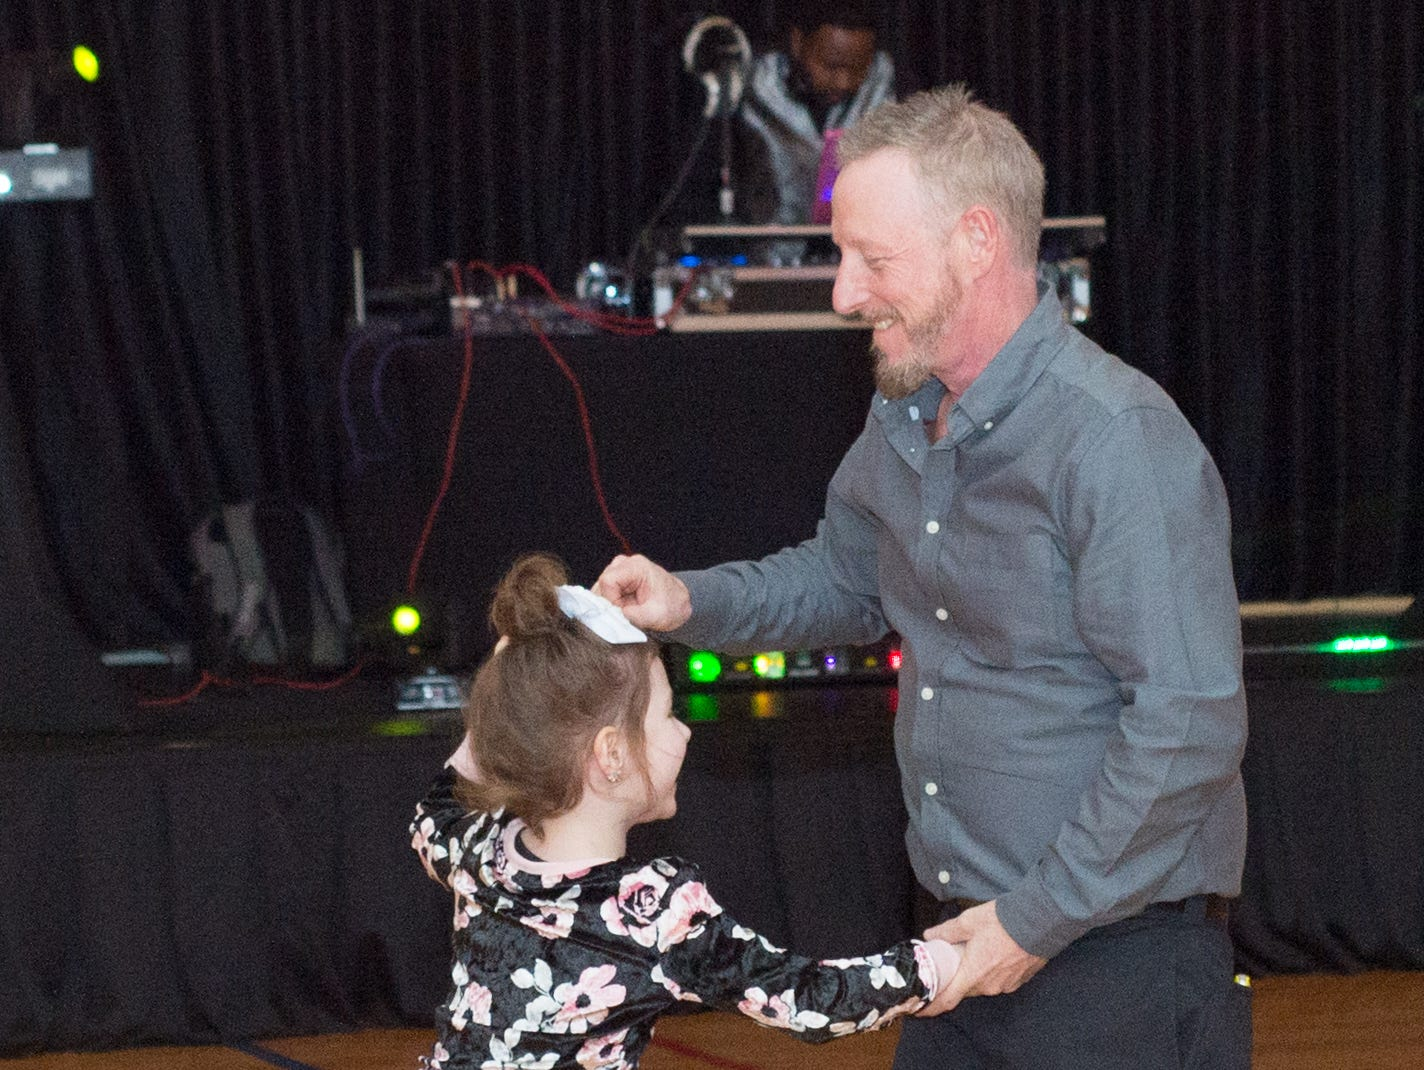 Attendees show off their best moves during the Daddy Daughter Dance held at Delmas Long Community Center on Saturday, Feb. 2, 2019.